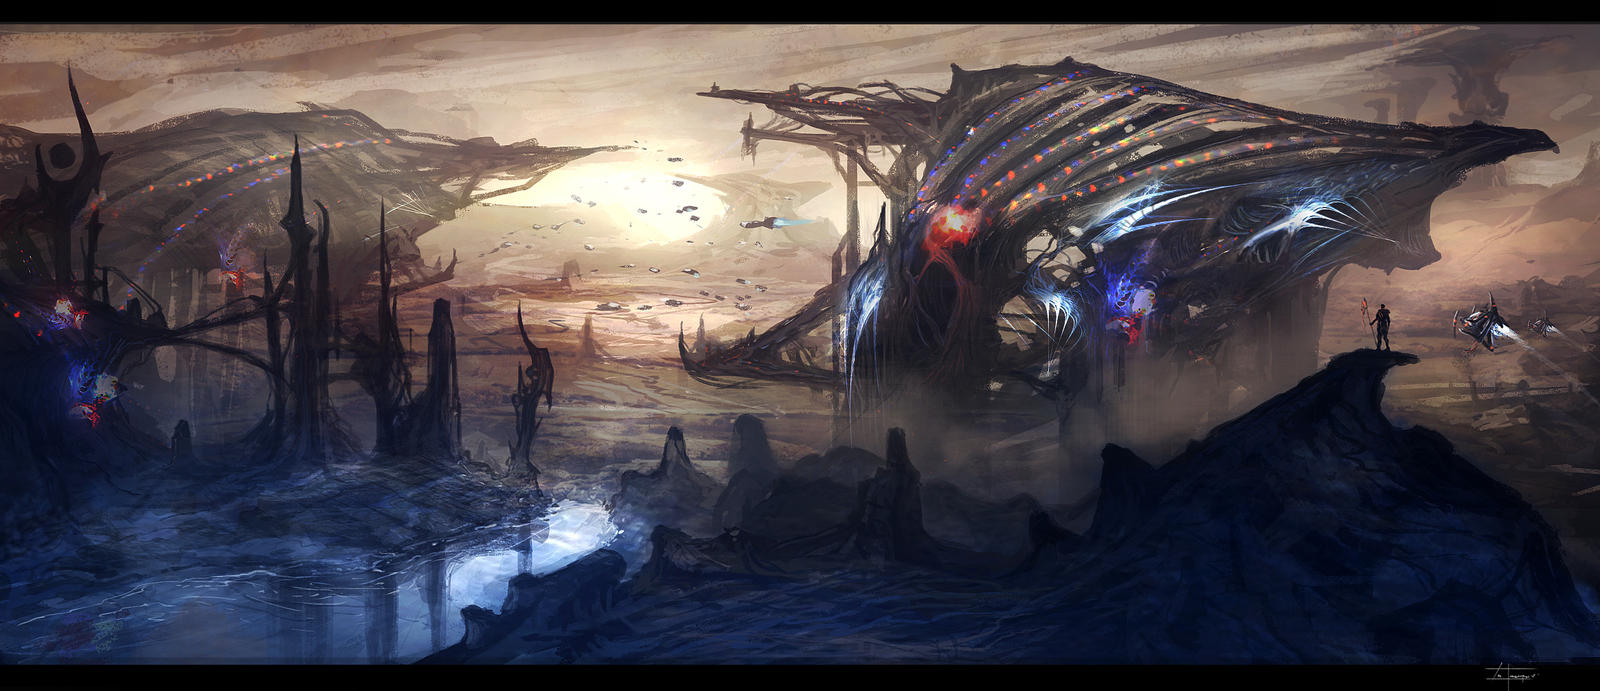 Alien home world (12-24-12) by zakforeman